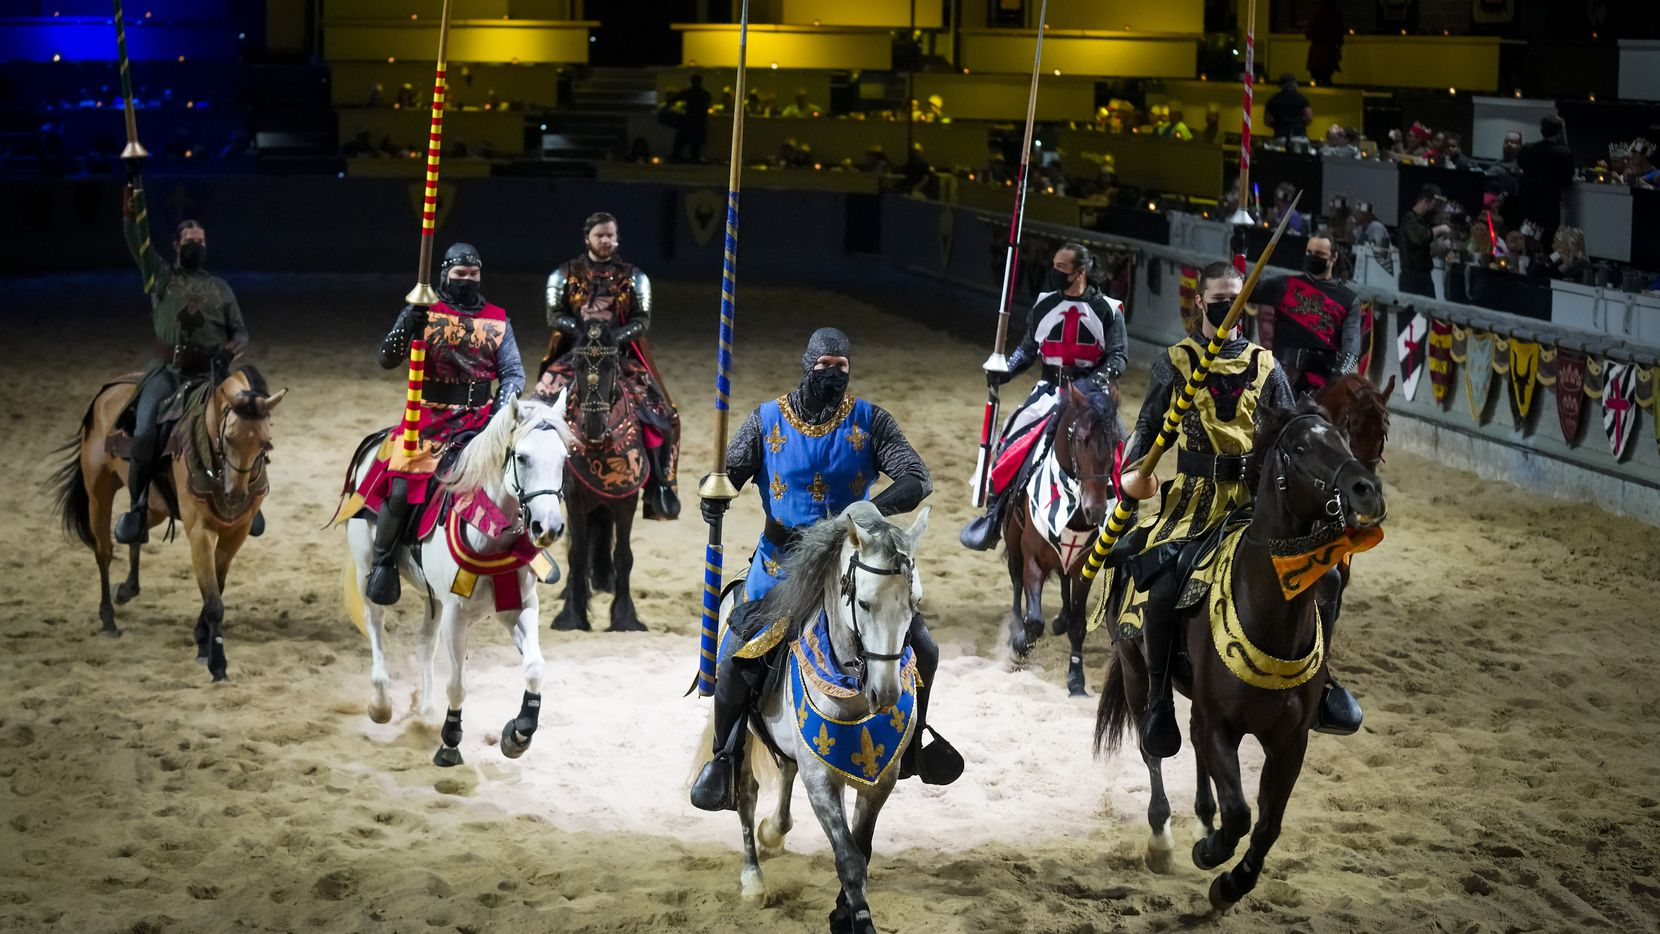 Knights wear face masks as they take part in a dinner show at Medieval Times on Thursday, Aug. 6, 2020, in Dallas.